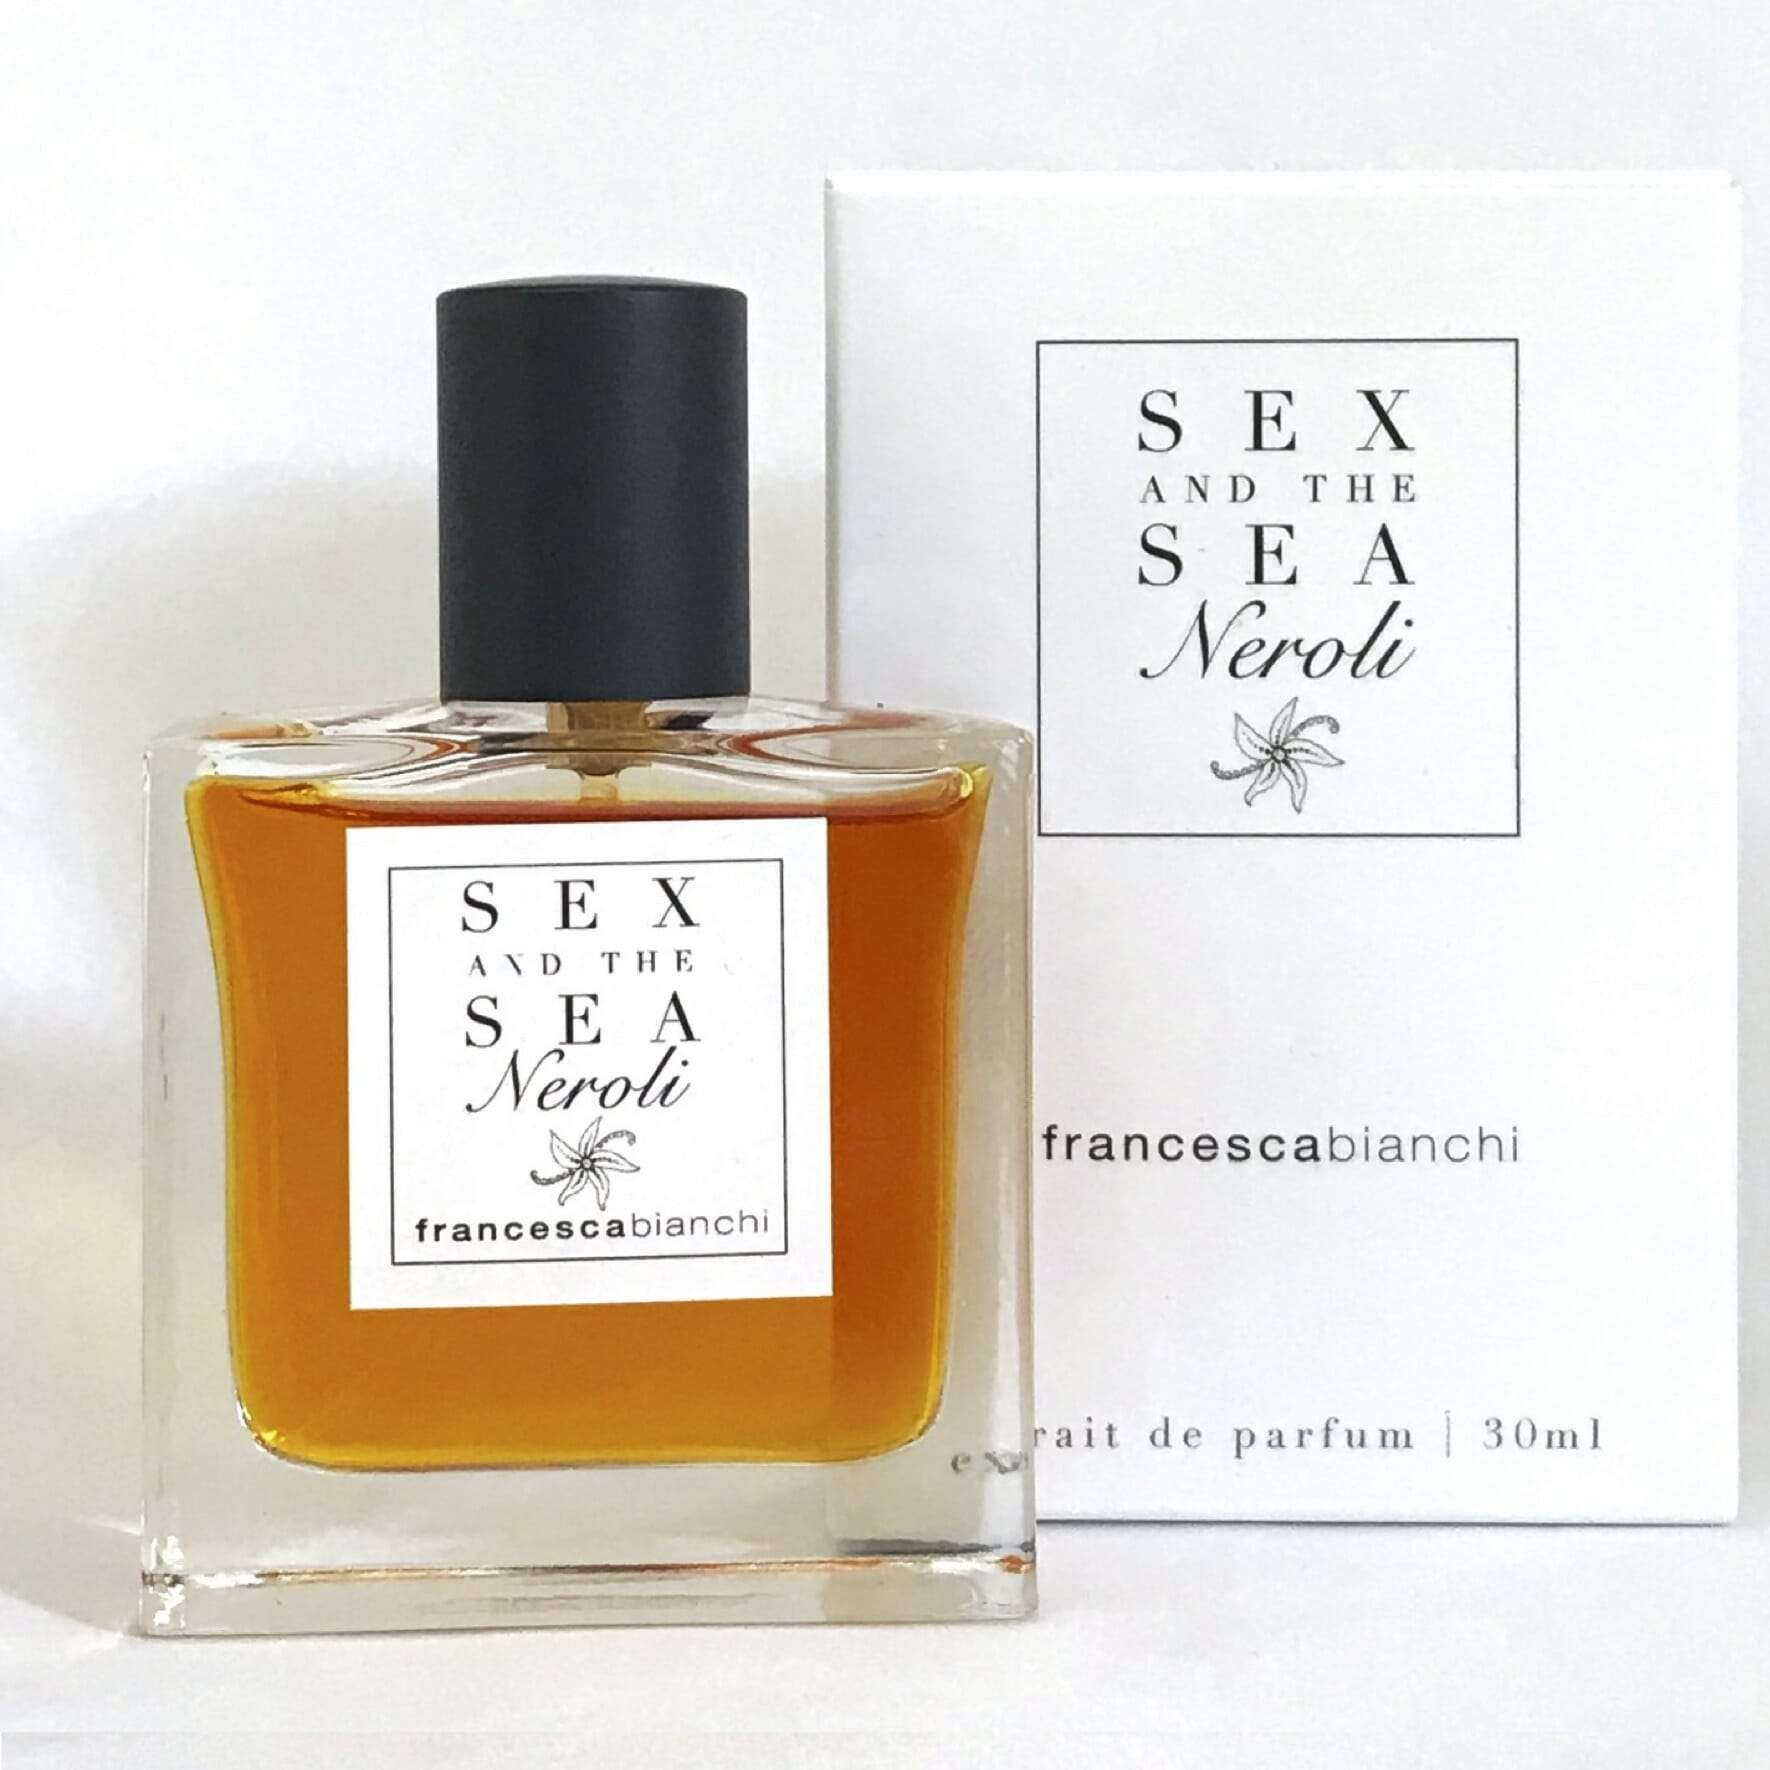 Sex and The Sea Neroli perfume 30 ml Francesca Bianchi Perfumes with box